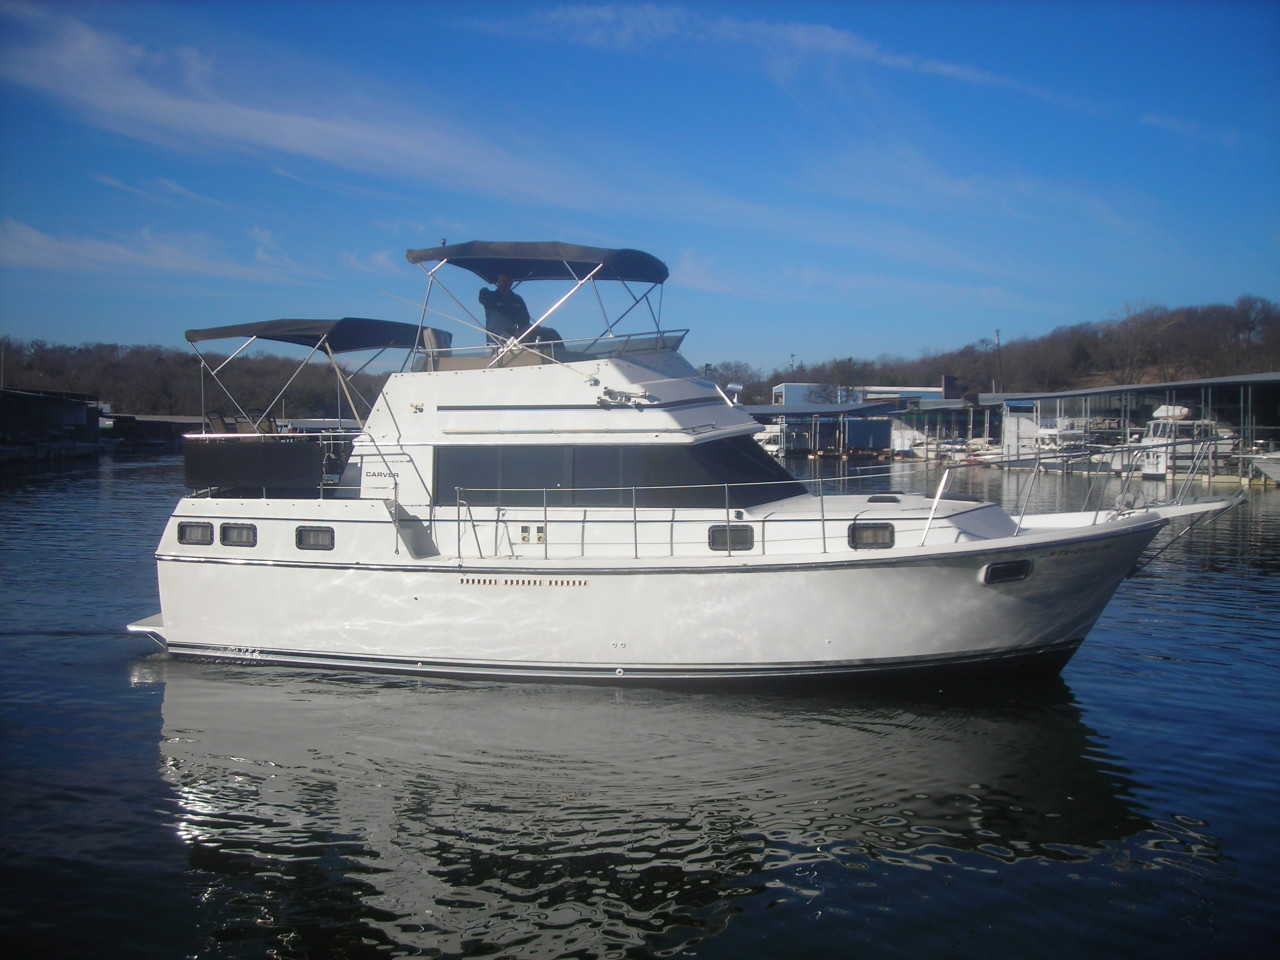 http://eisenhoweryachtclub.com/wp-content/uploads/new-boat-pictures-006.jpg